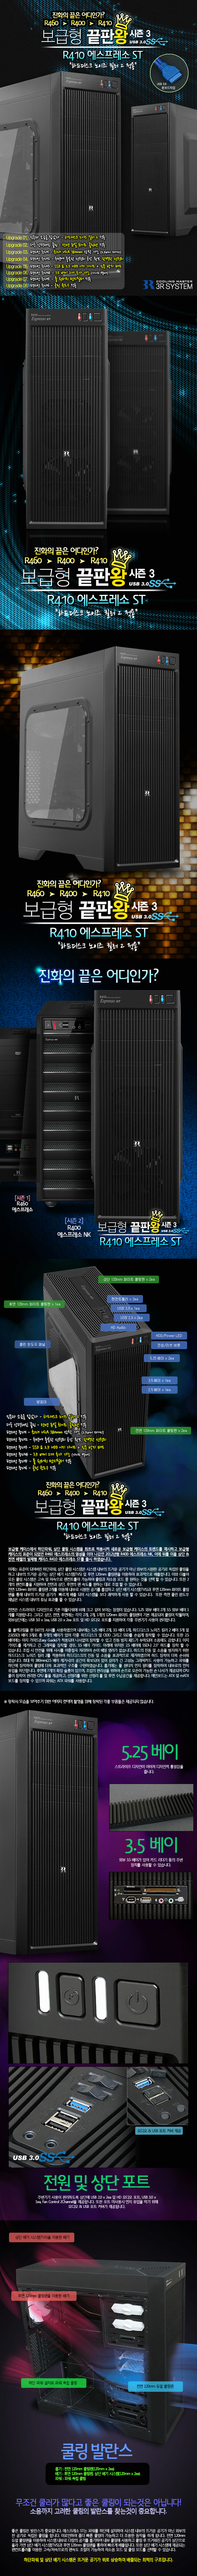 r410new_black_contents_01_700px.jpg